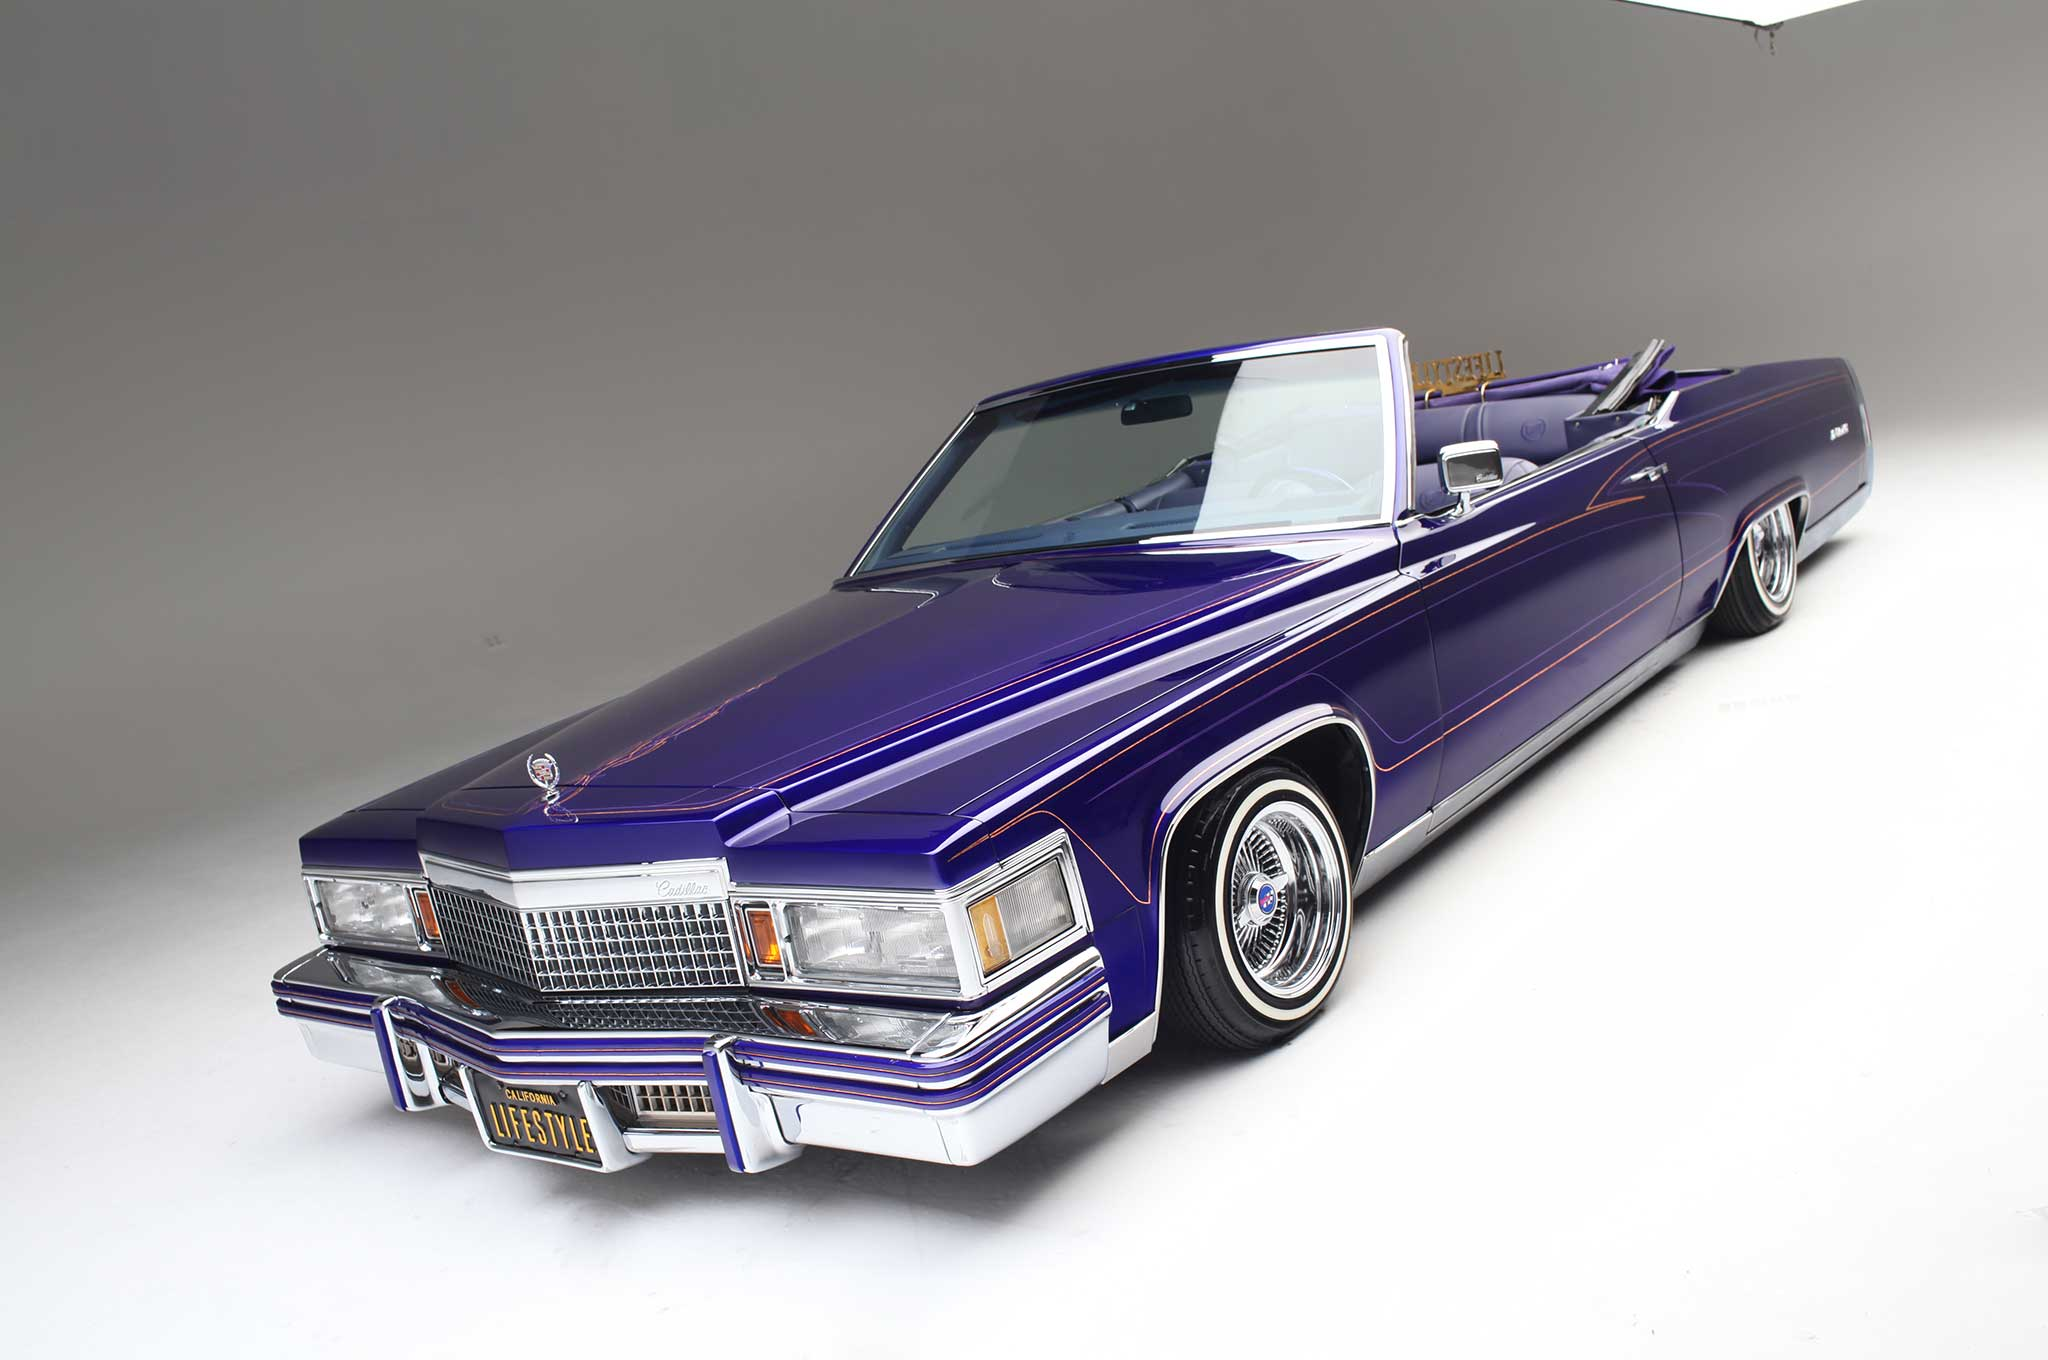 1979-cadillac-le-cabriolet-driver-side-front-view